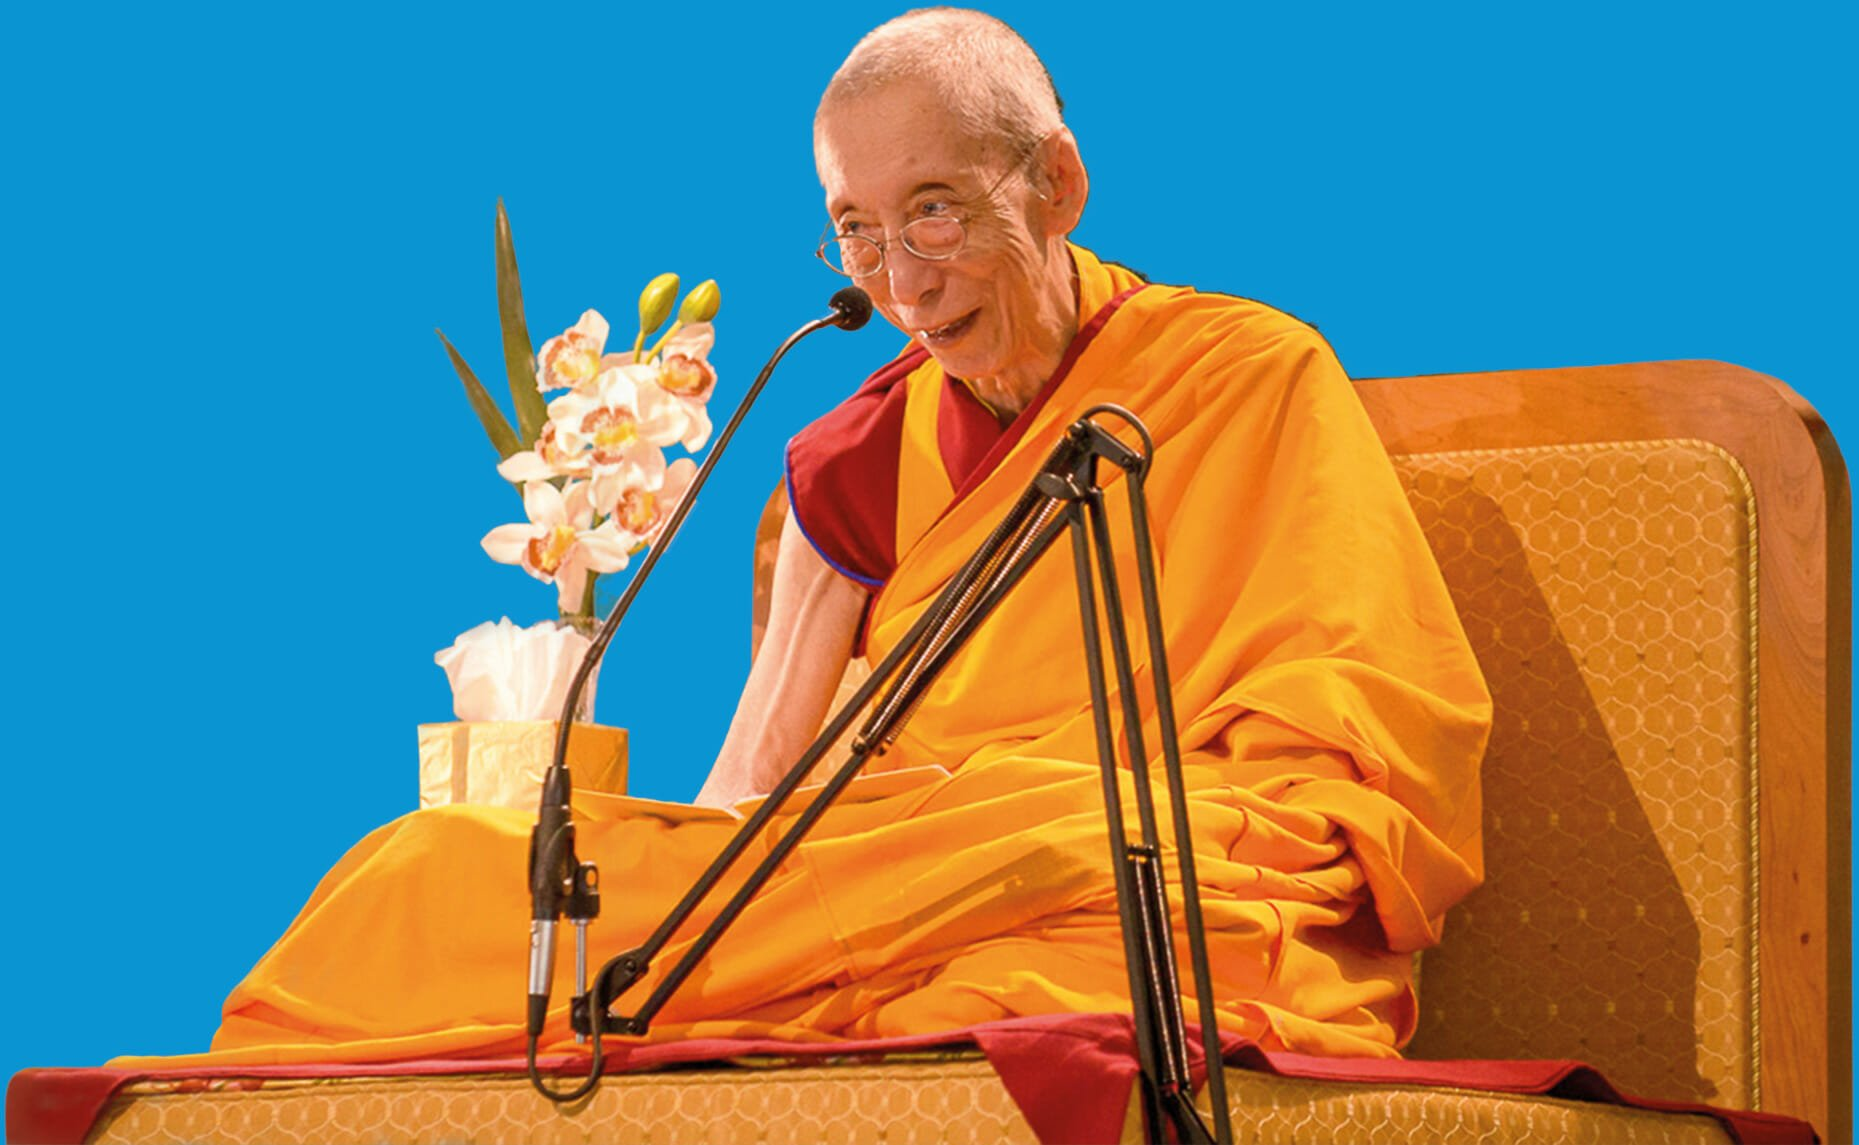 geshe-la-throne-nkt-blue